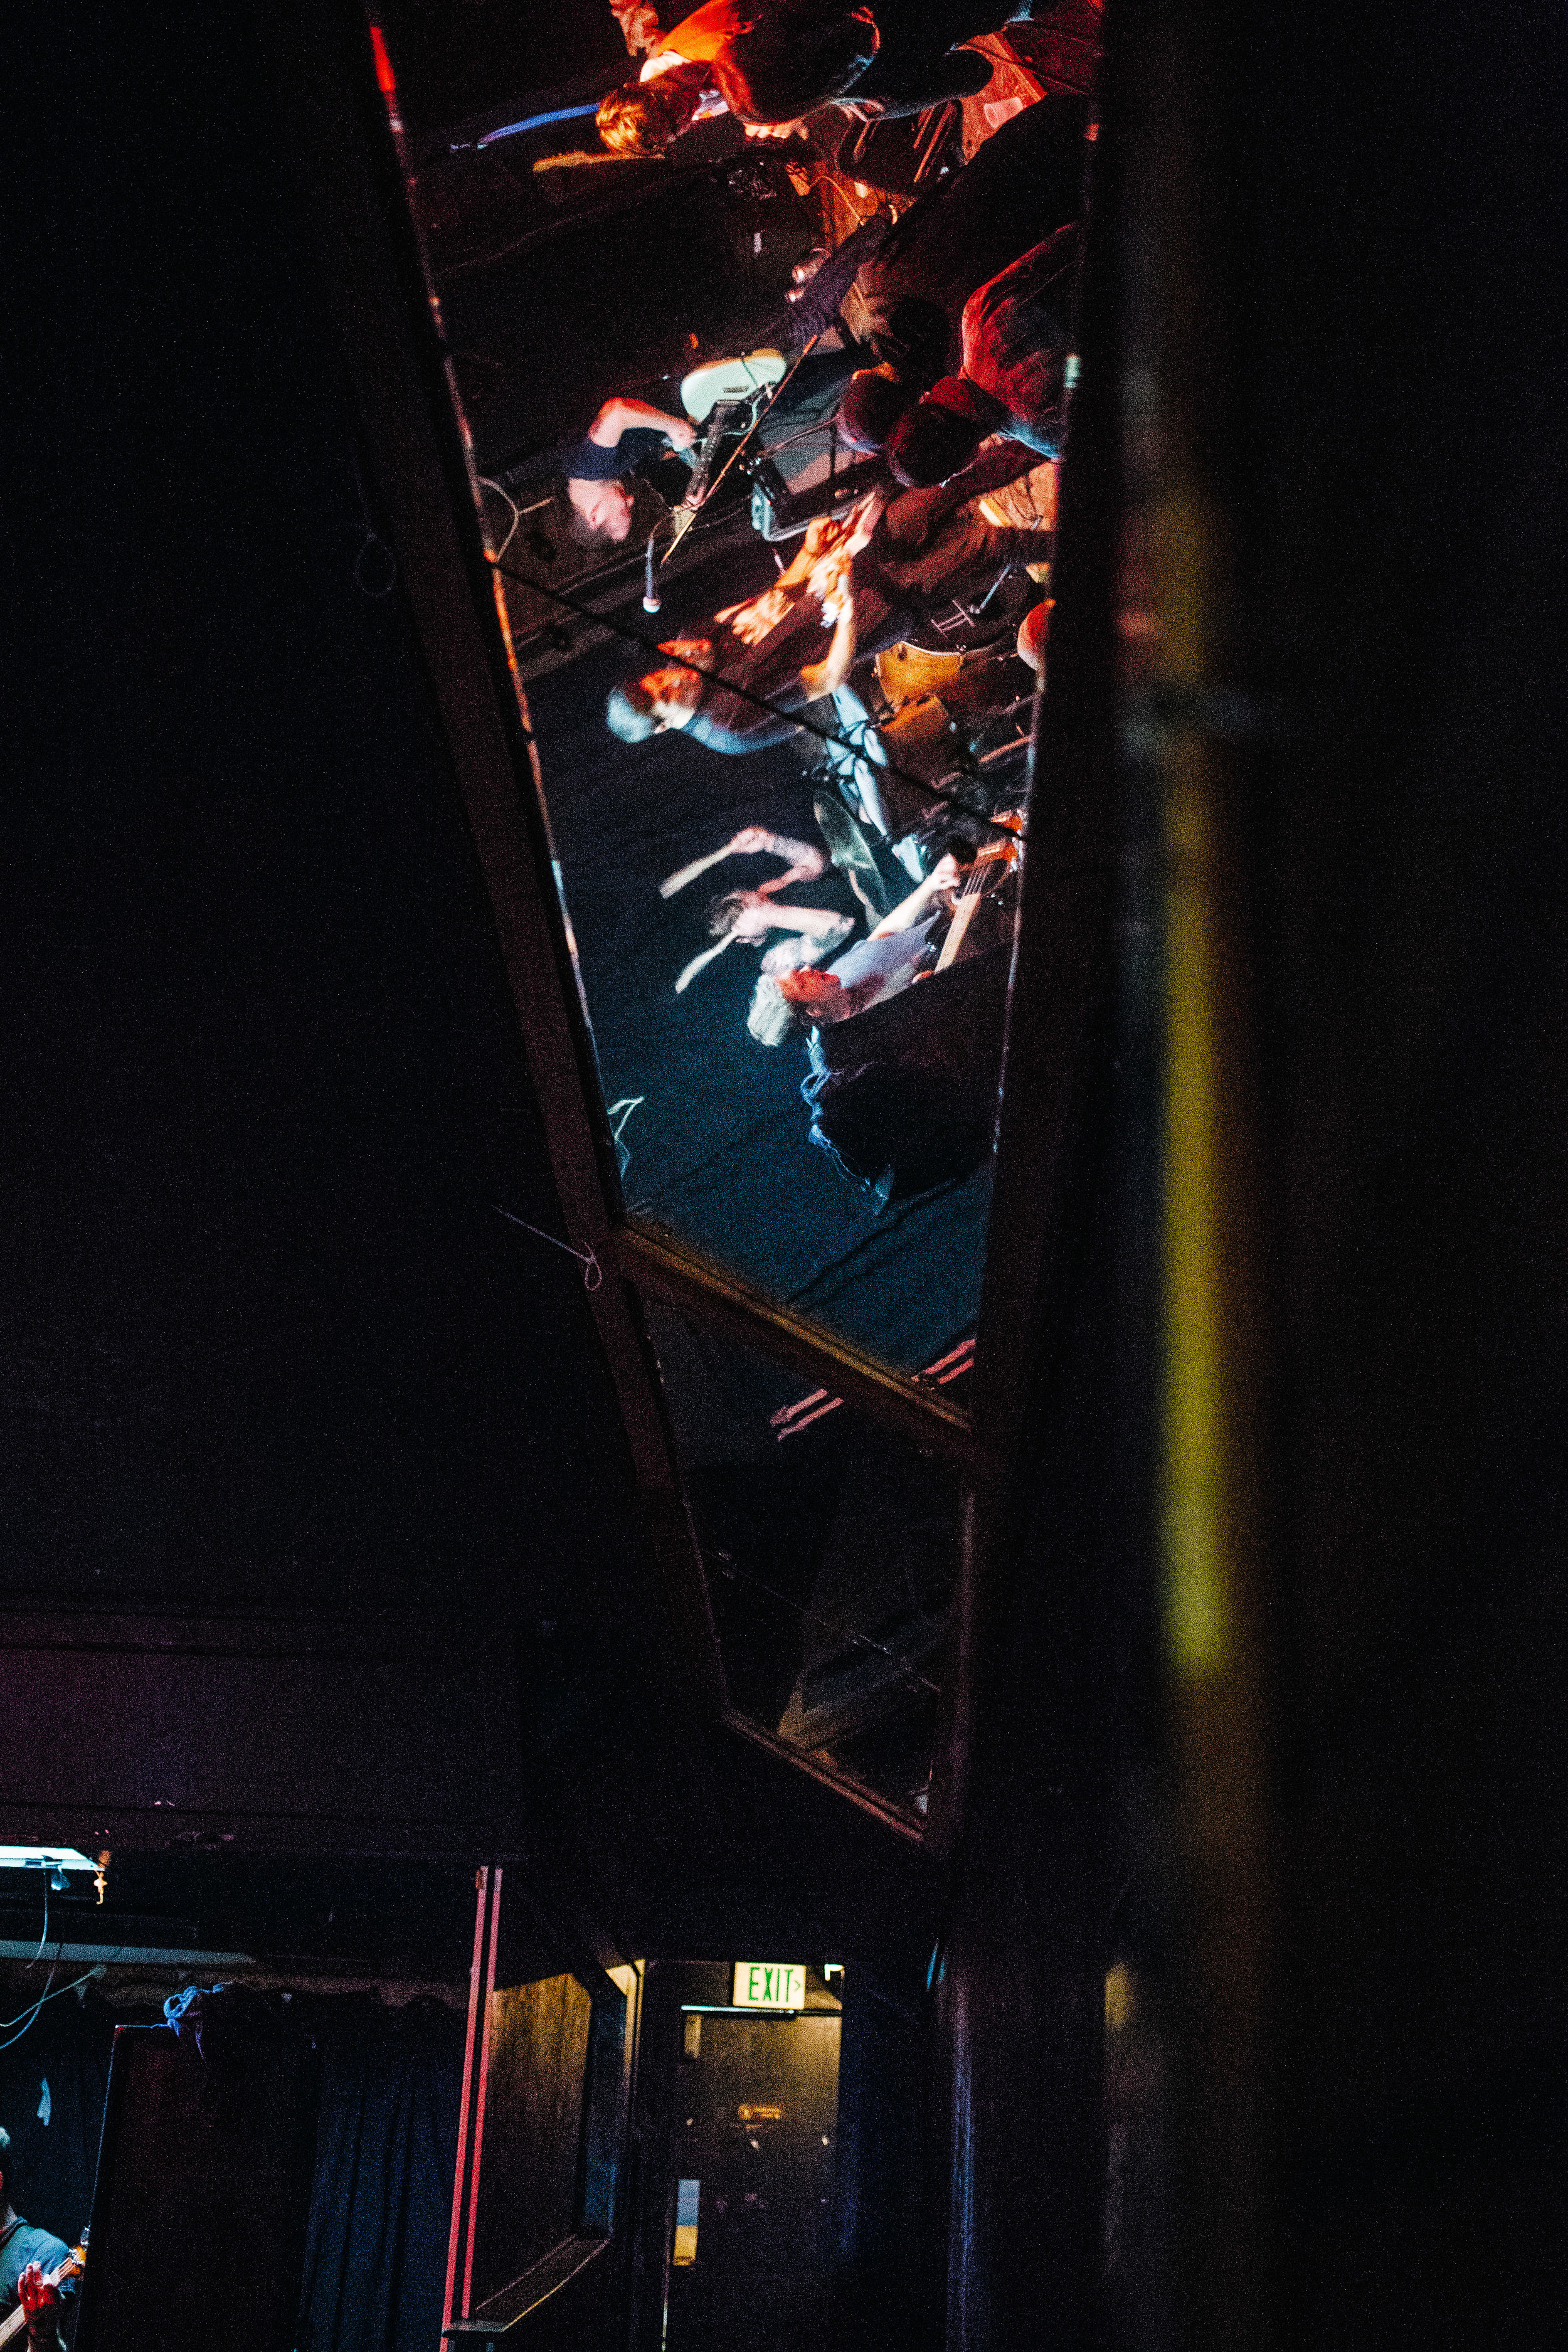 The venue had mirrors all along the walls. Here the band is reflected in a ceiling mirror.